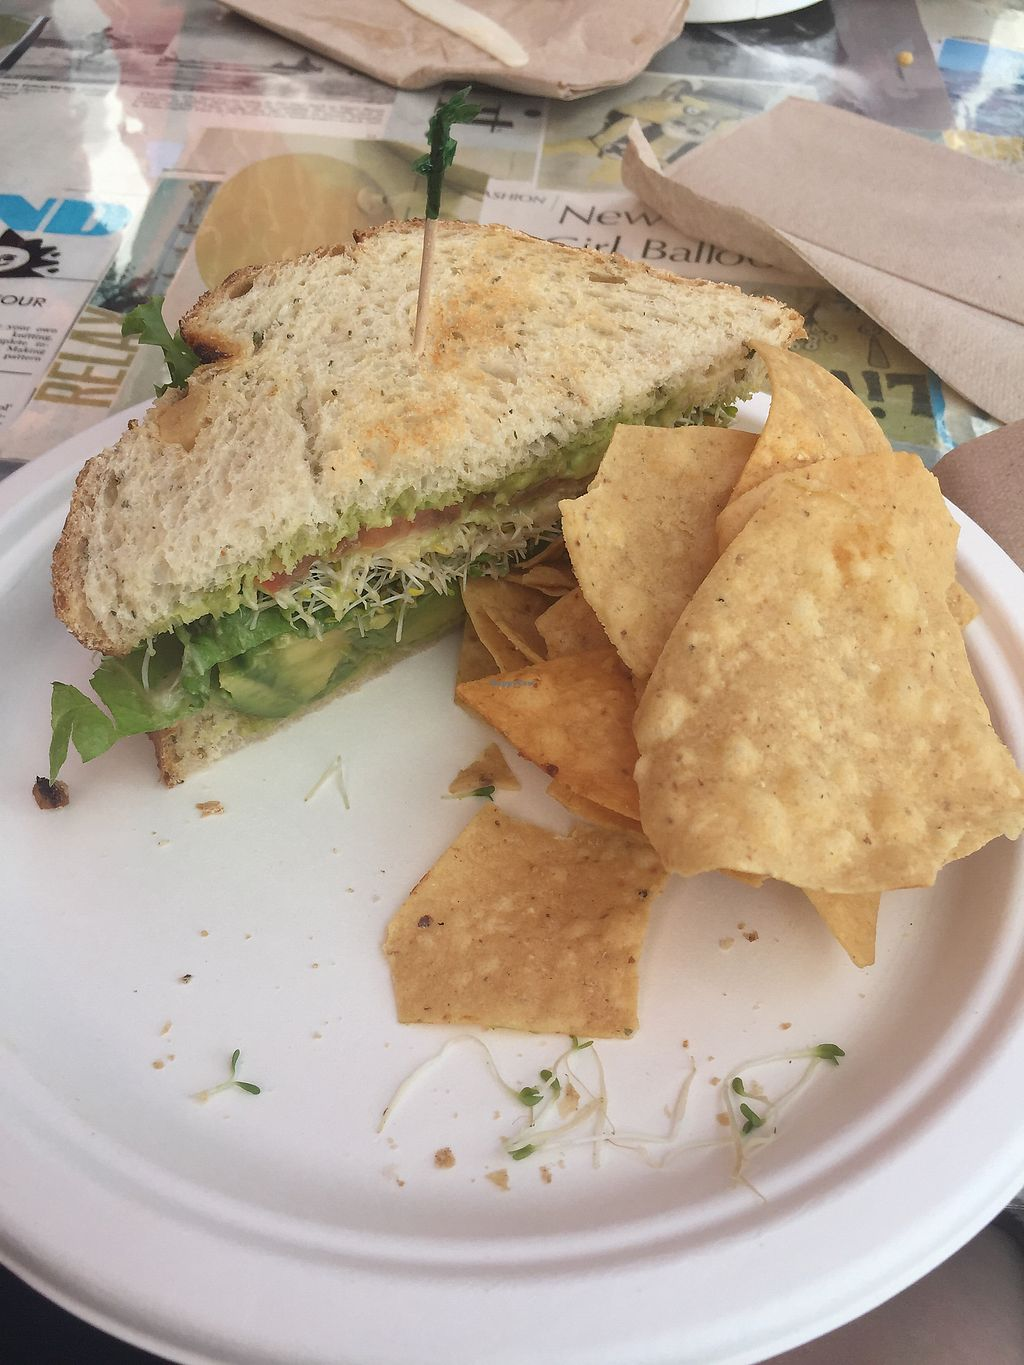 """Photo of The Stand  by <a href=""""/members/profile/AngieLupusLife"""">AngieLupusLife</a> <br/>avocado sandwich and chips <br/> July 24, 2017  - <a href='/contact/abuse/image/1645/284099'>Report</a>"""